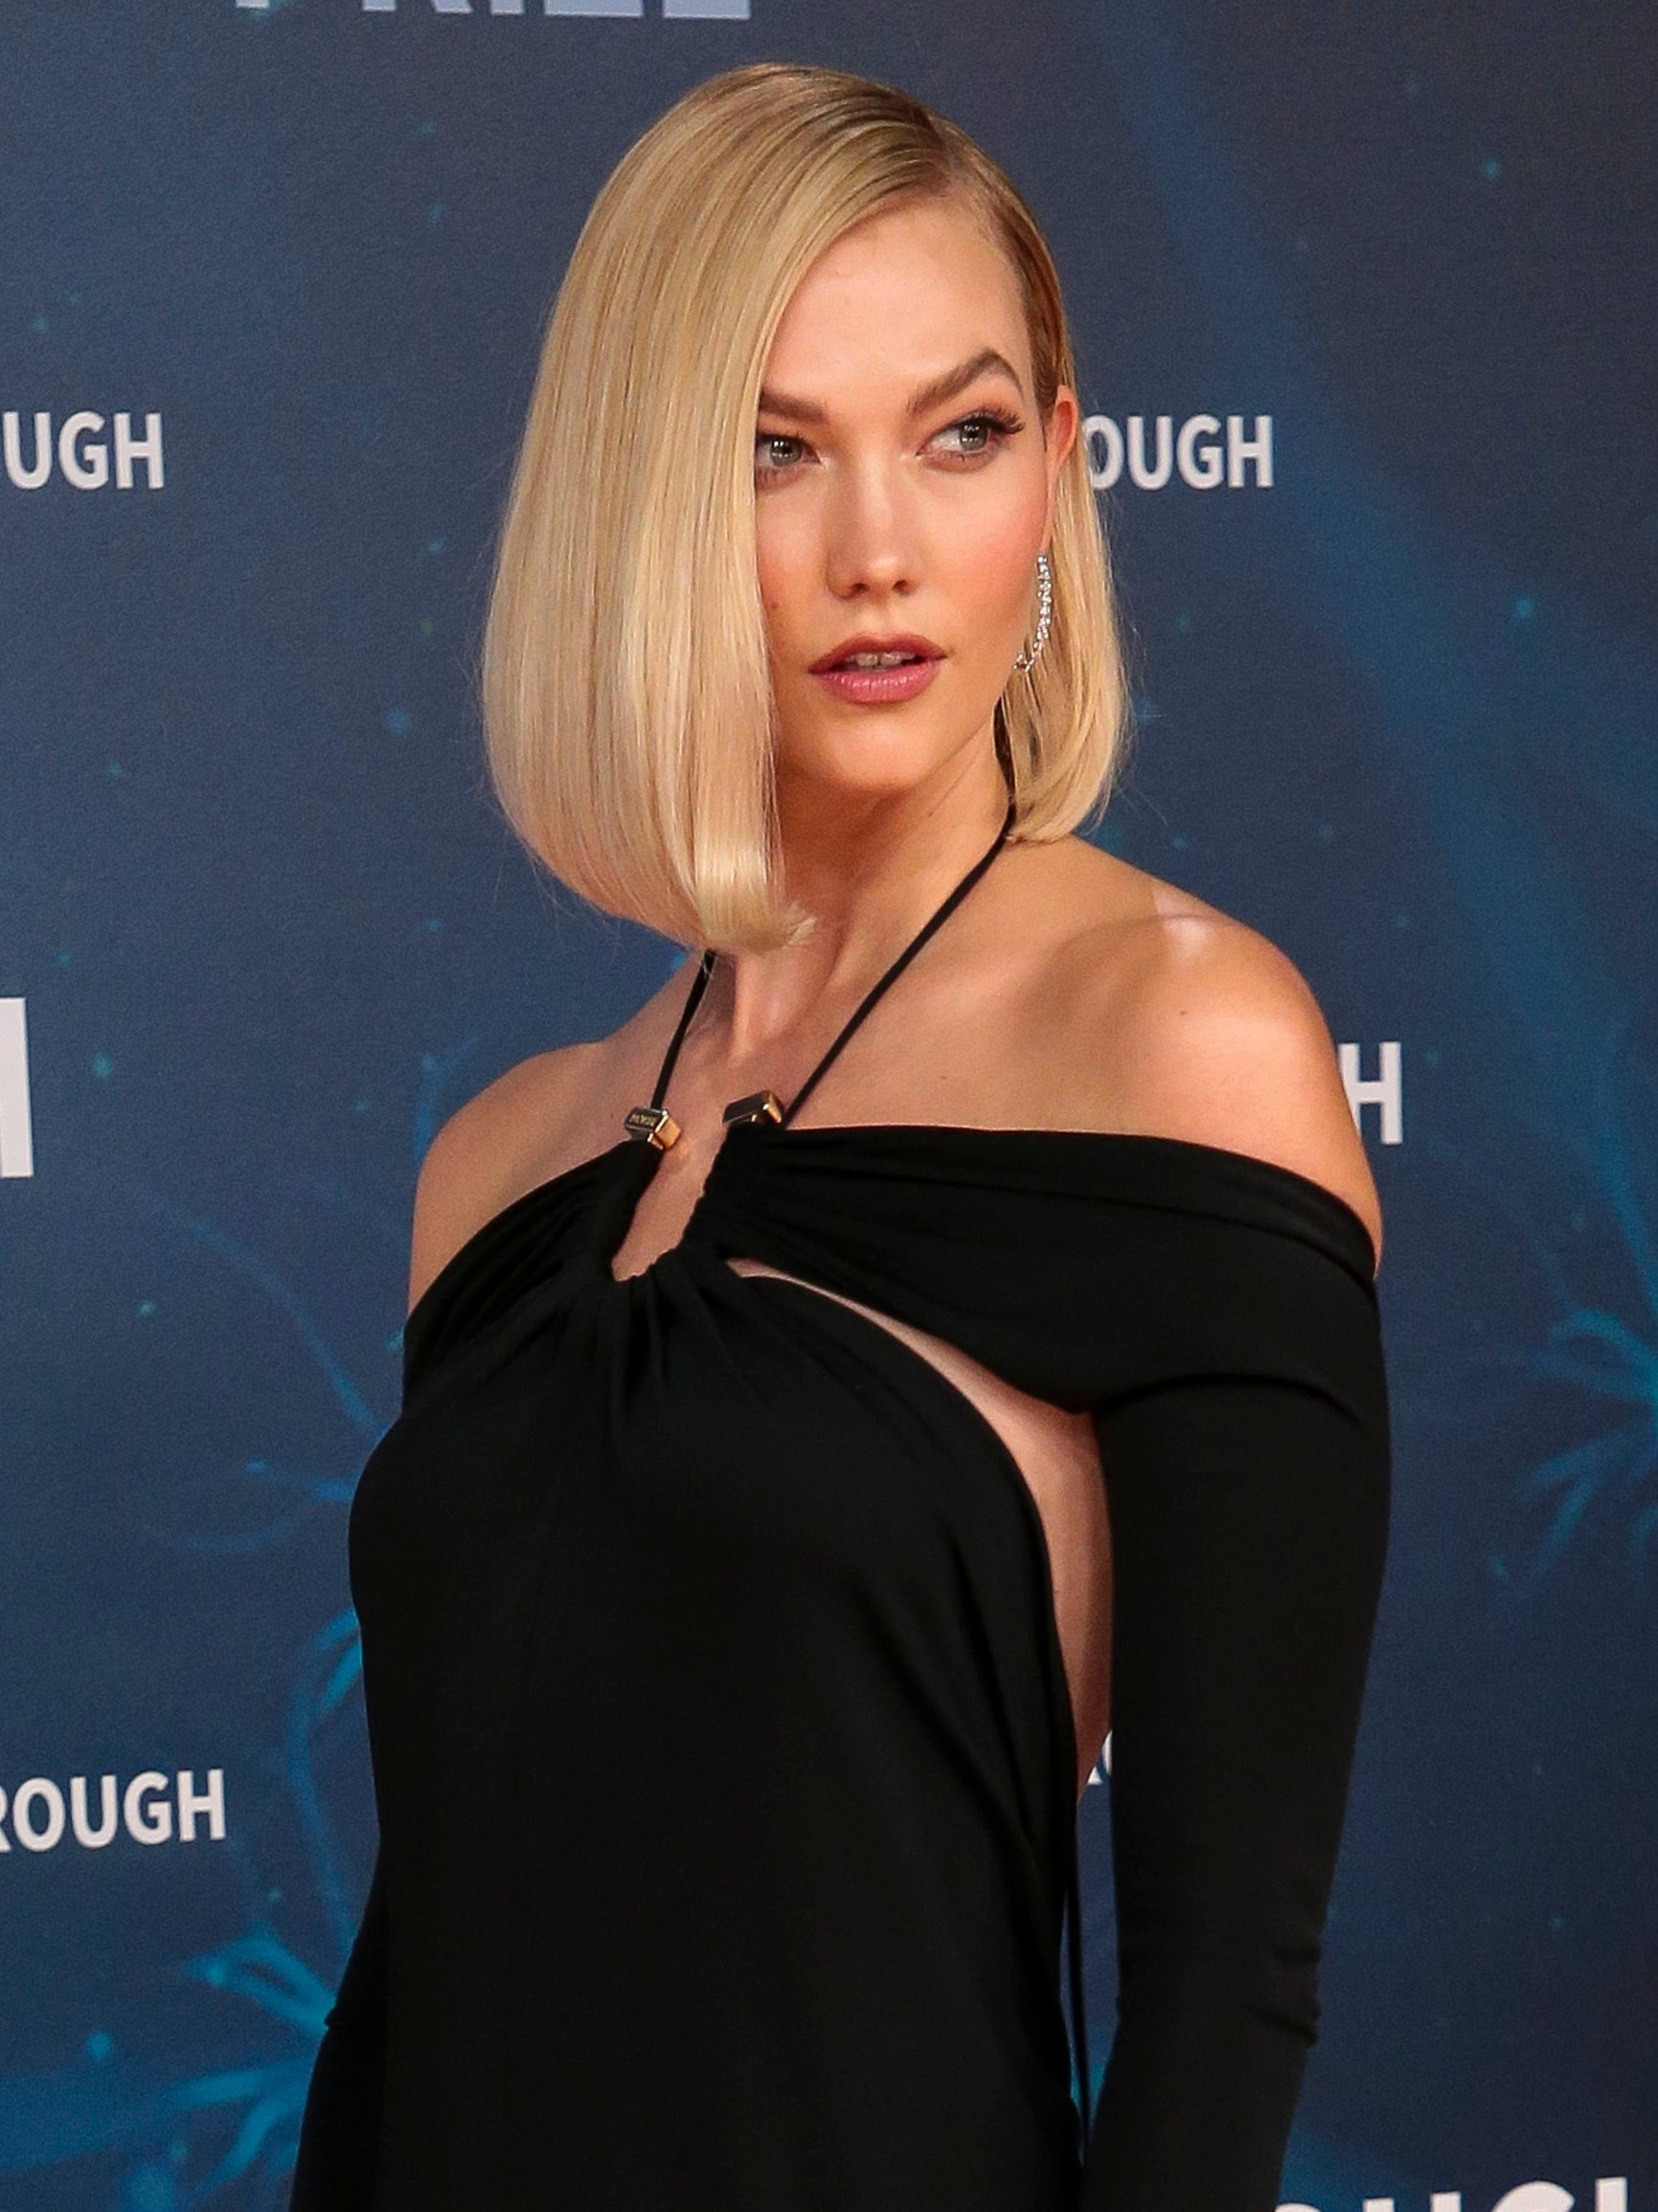 MOUNTAIN VIEW, CALIFORNIA - NOVEMBER 03: Karlie Kloss attends the 2020 Breakthrough Prize Ceremony at NASA Ames Research Center on November 03, 2019 in Mountain View, California., Image: 481159755, License: Rights-managed, Restrictions: **Not for sale in: USA, Brazil, Mexico**, Model Release: no, Credit line: IS/MPI / Capital pictures / Profimedia